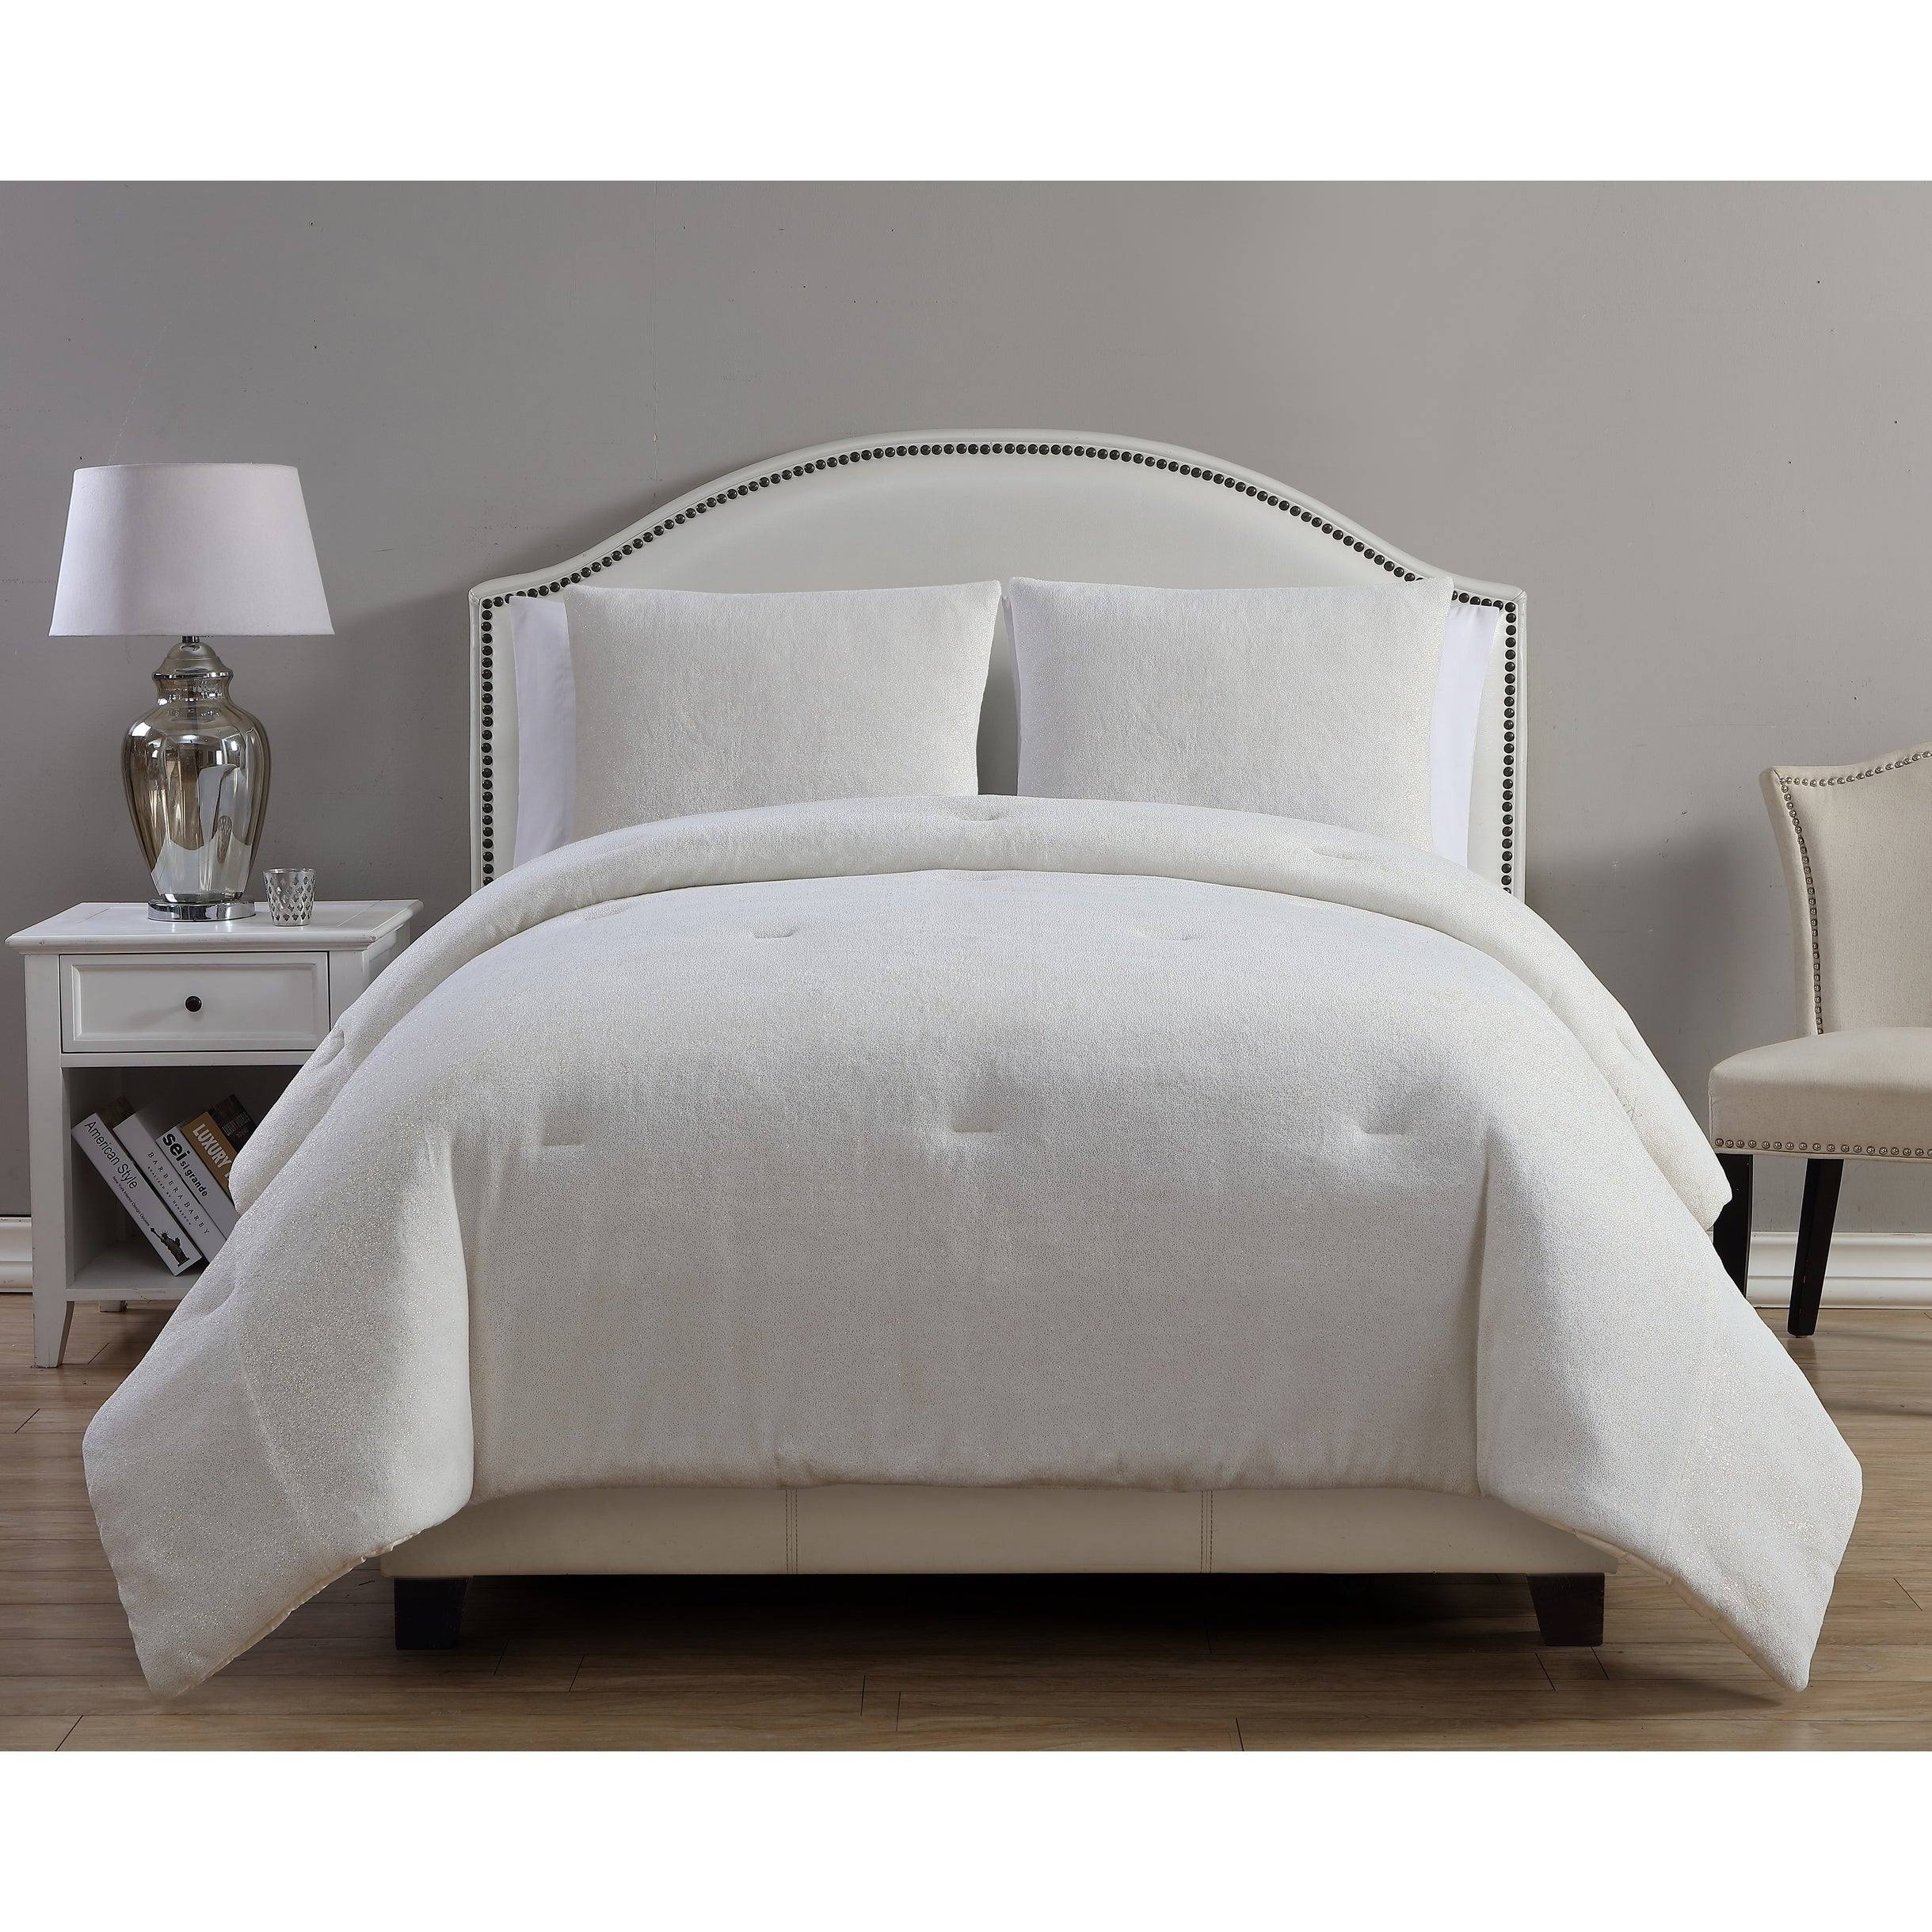 metallic plush comforter duvet bedding free bath set product home cover gabriella vcny piece shipping overstock today